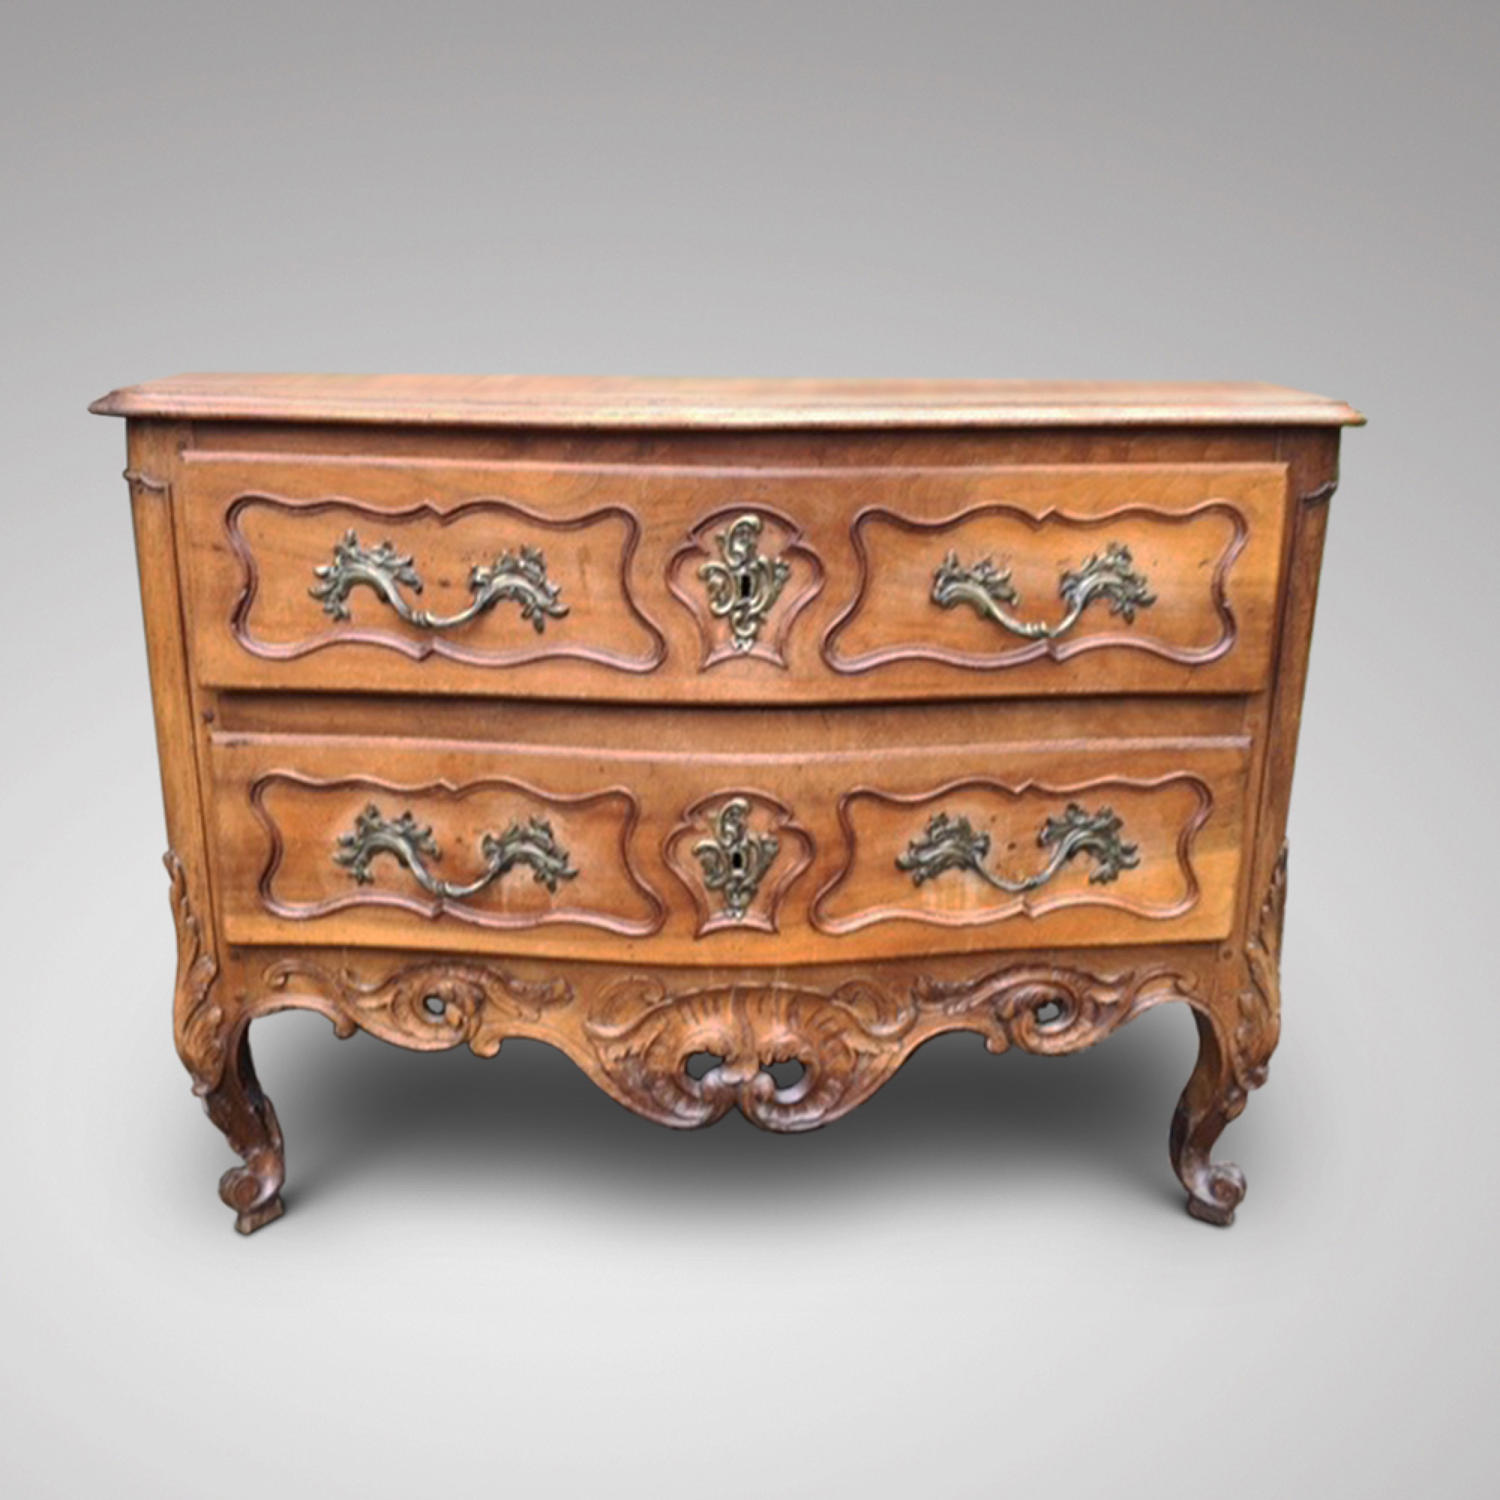 AN 18TH CENTURY  FRENCH PROVINCIAL FRUITWOOD COMMODE